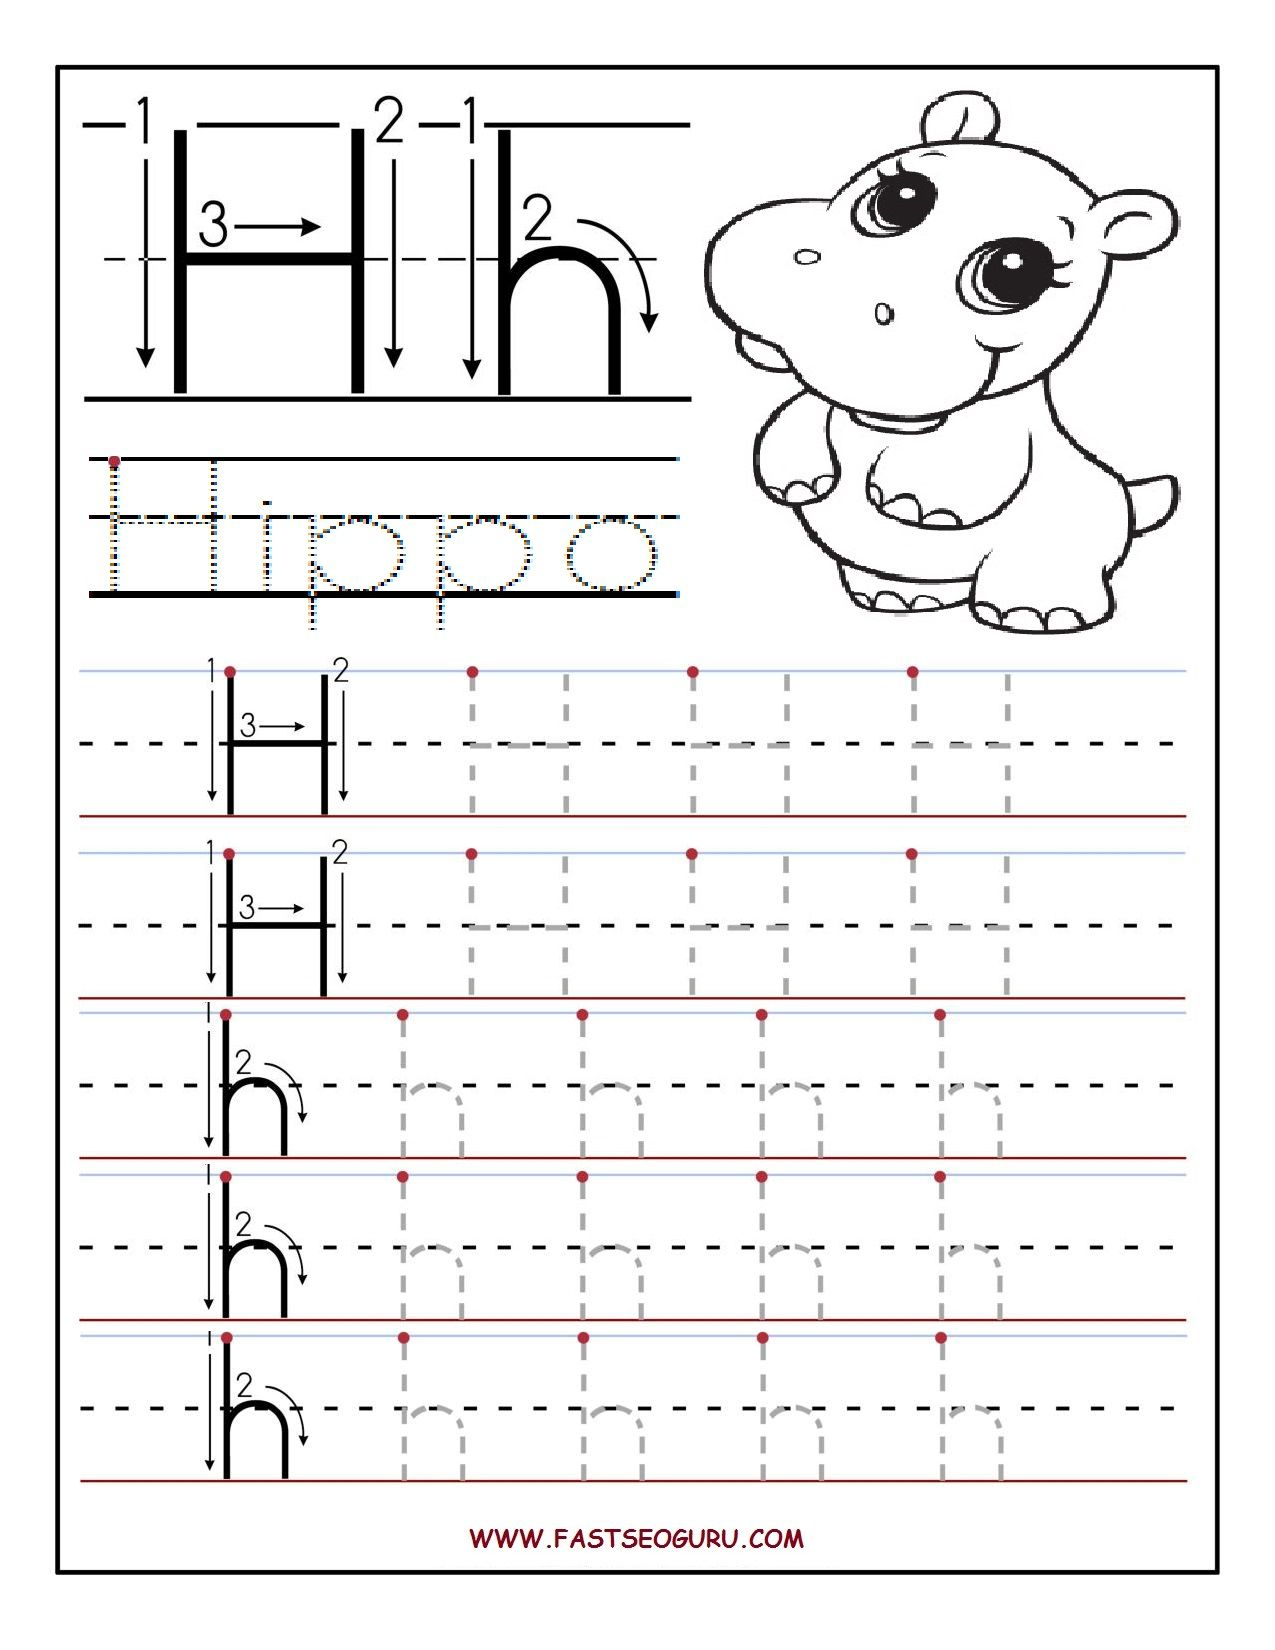 Printable Letter H Tracing Worksheets For Preschool within Letter H Tracing Activity